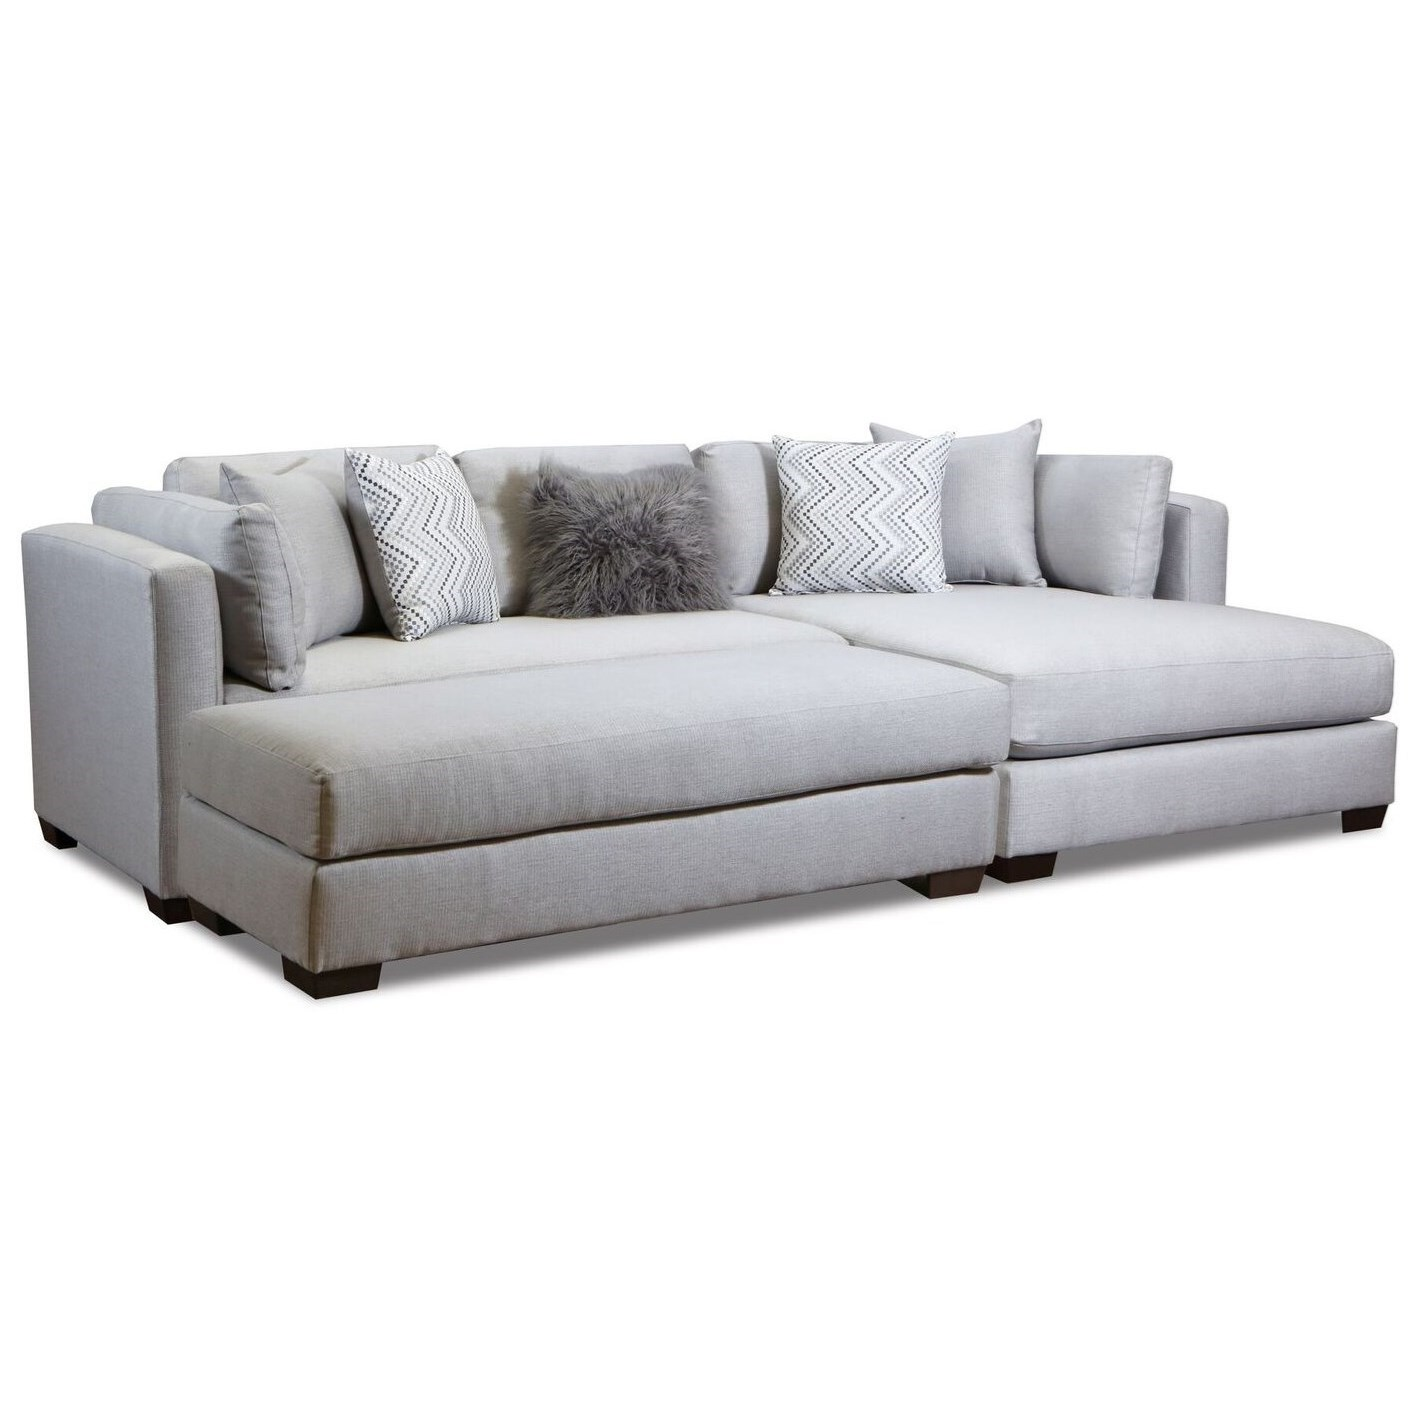 american furniture 5500 chaise inspired sectional sofa prime rh primebrothers com Designer Sectional Sofas Tufted Sectional Sofa with Chaise